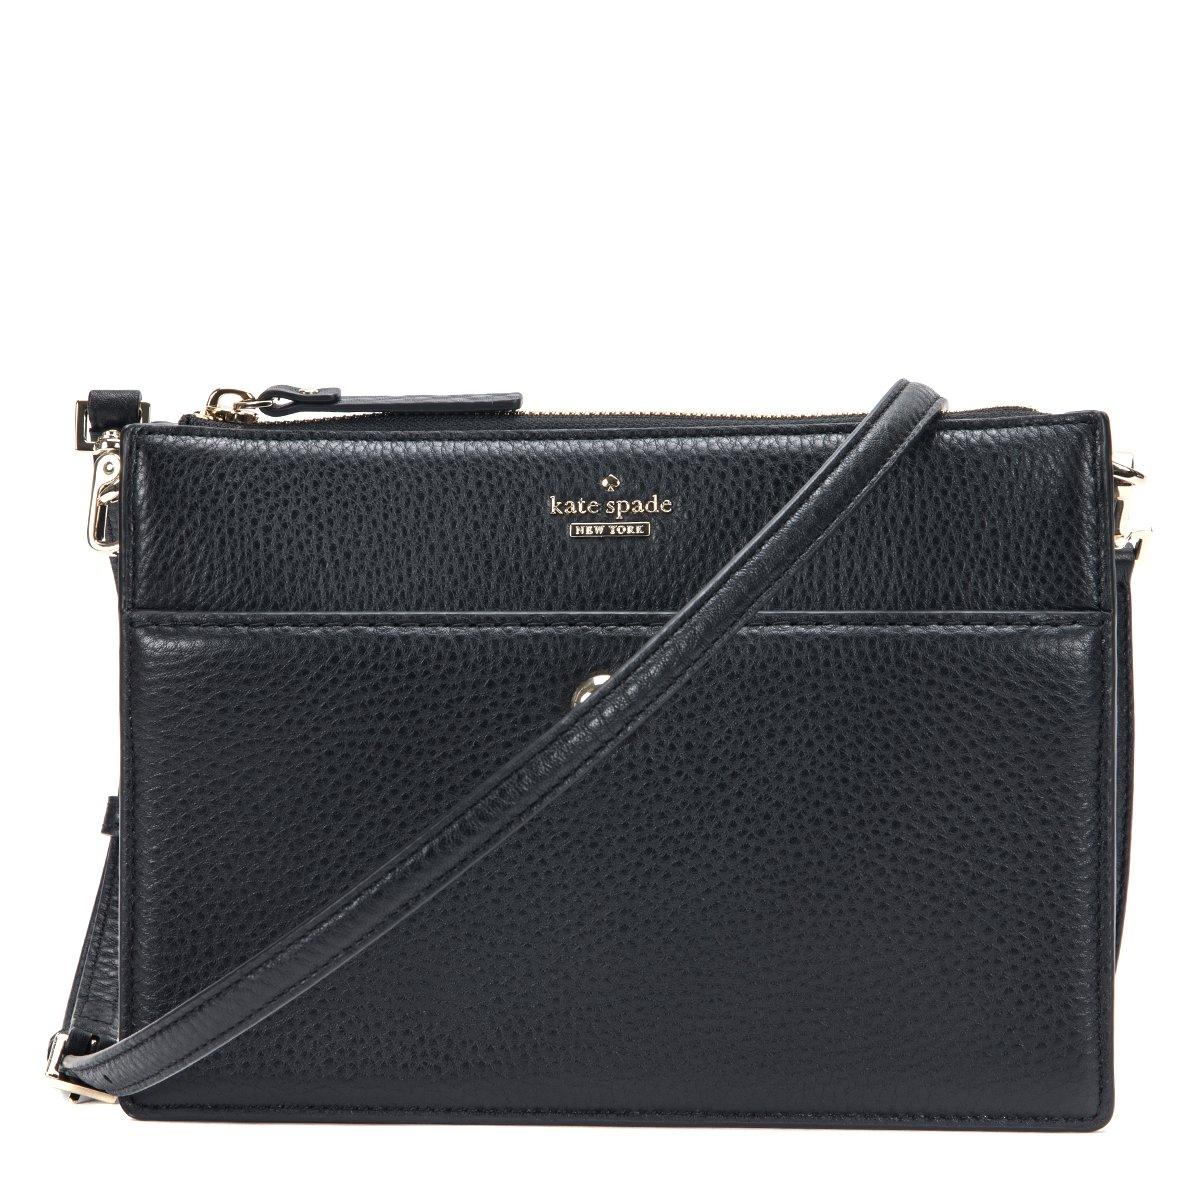 Kate Spade Women's Clarise Cross-Body Bag PXRU8136 001 Black